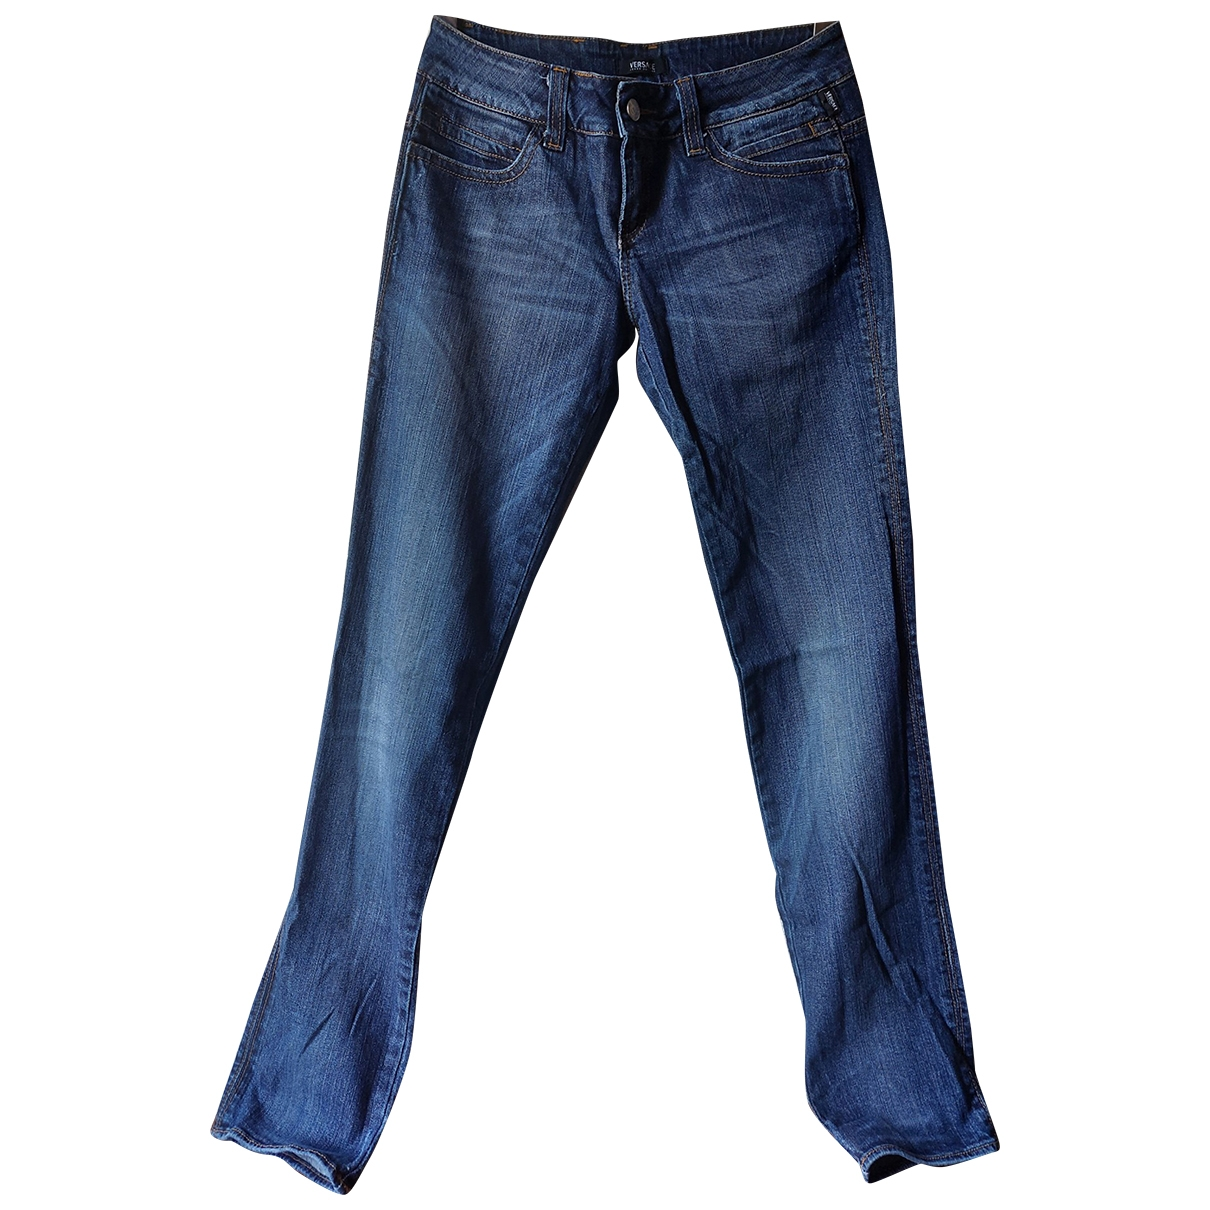 Versace Jeans \N Blue Cotton - elasthane Jeans for Women 38 FR